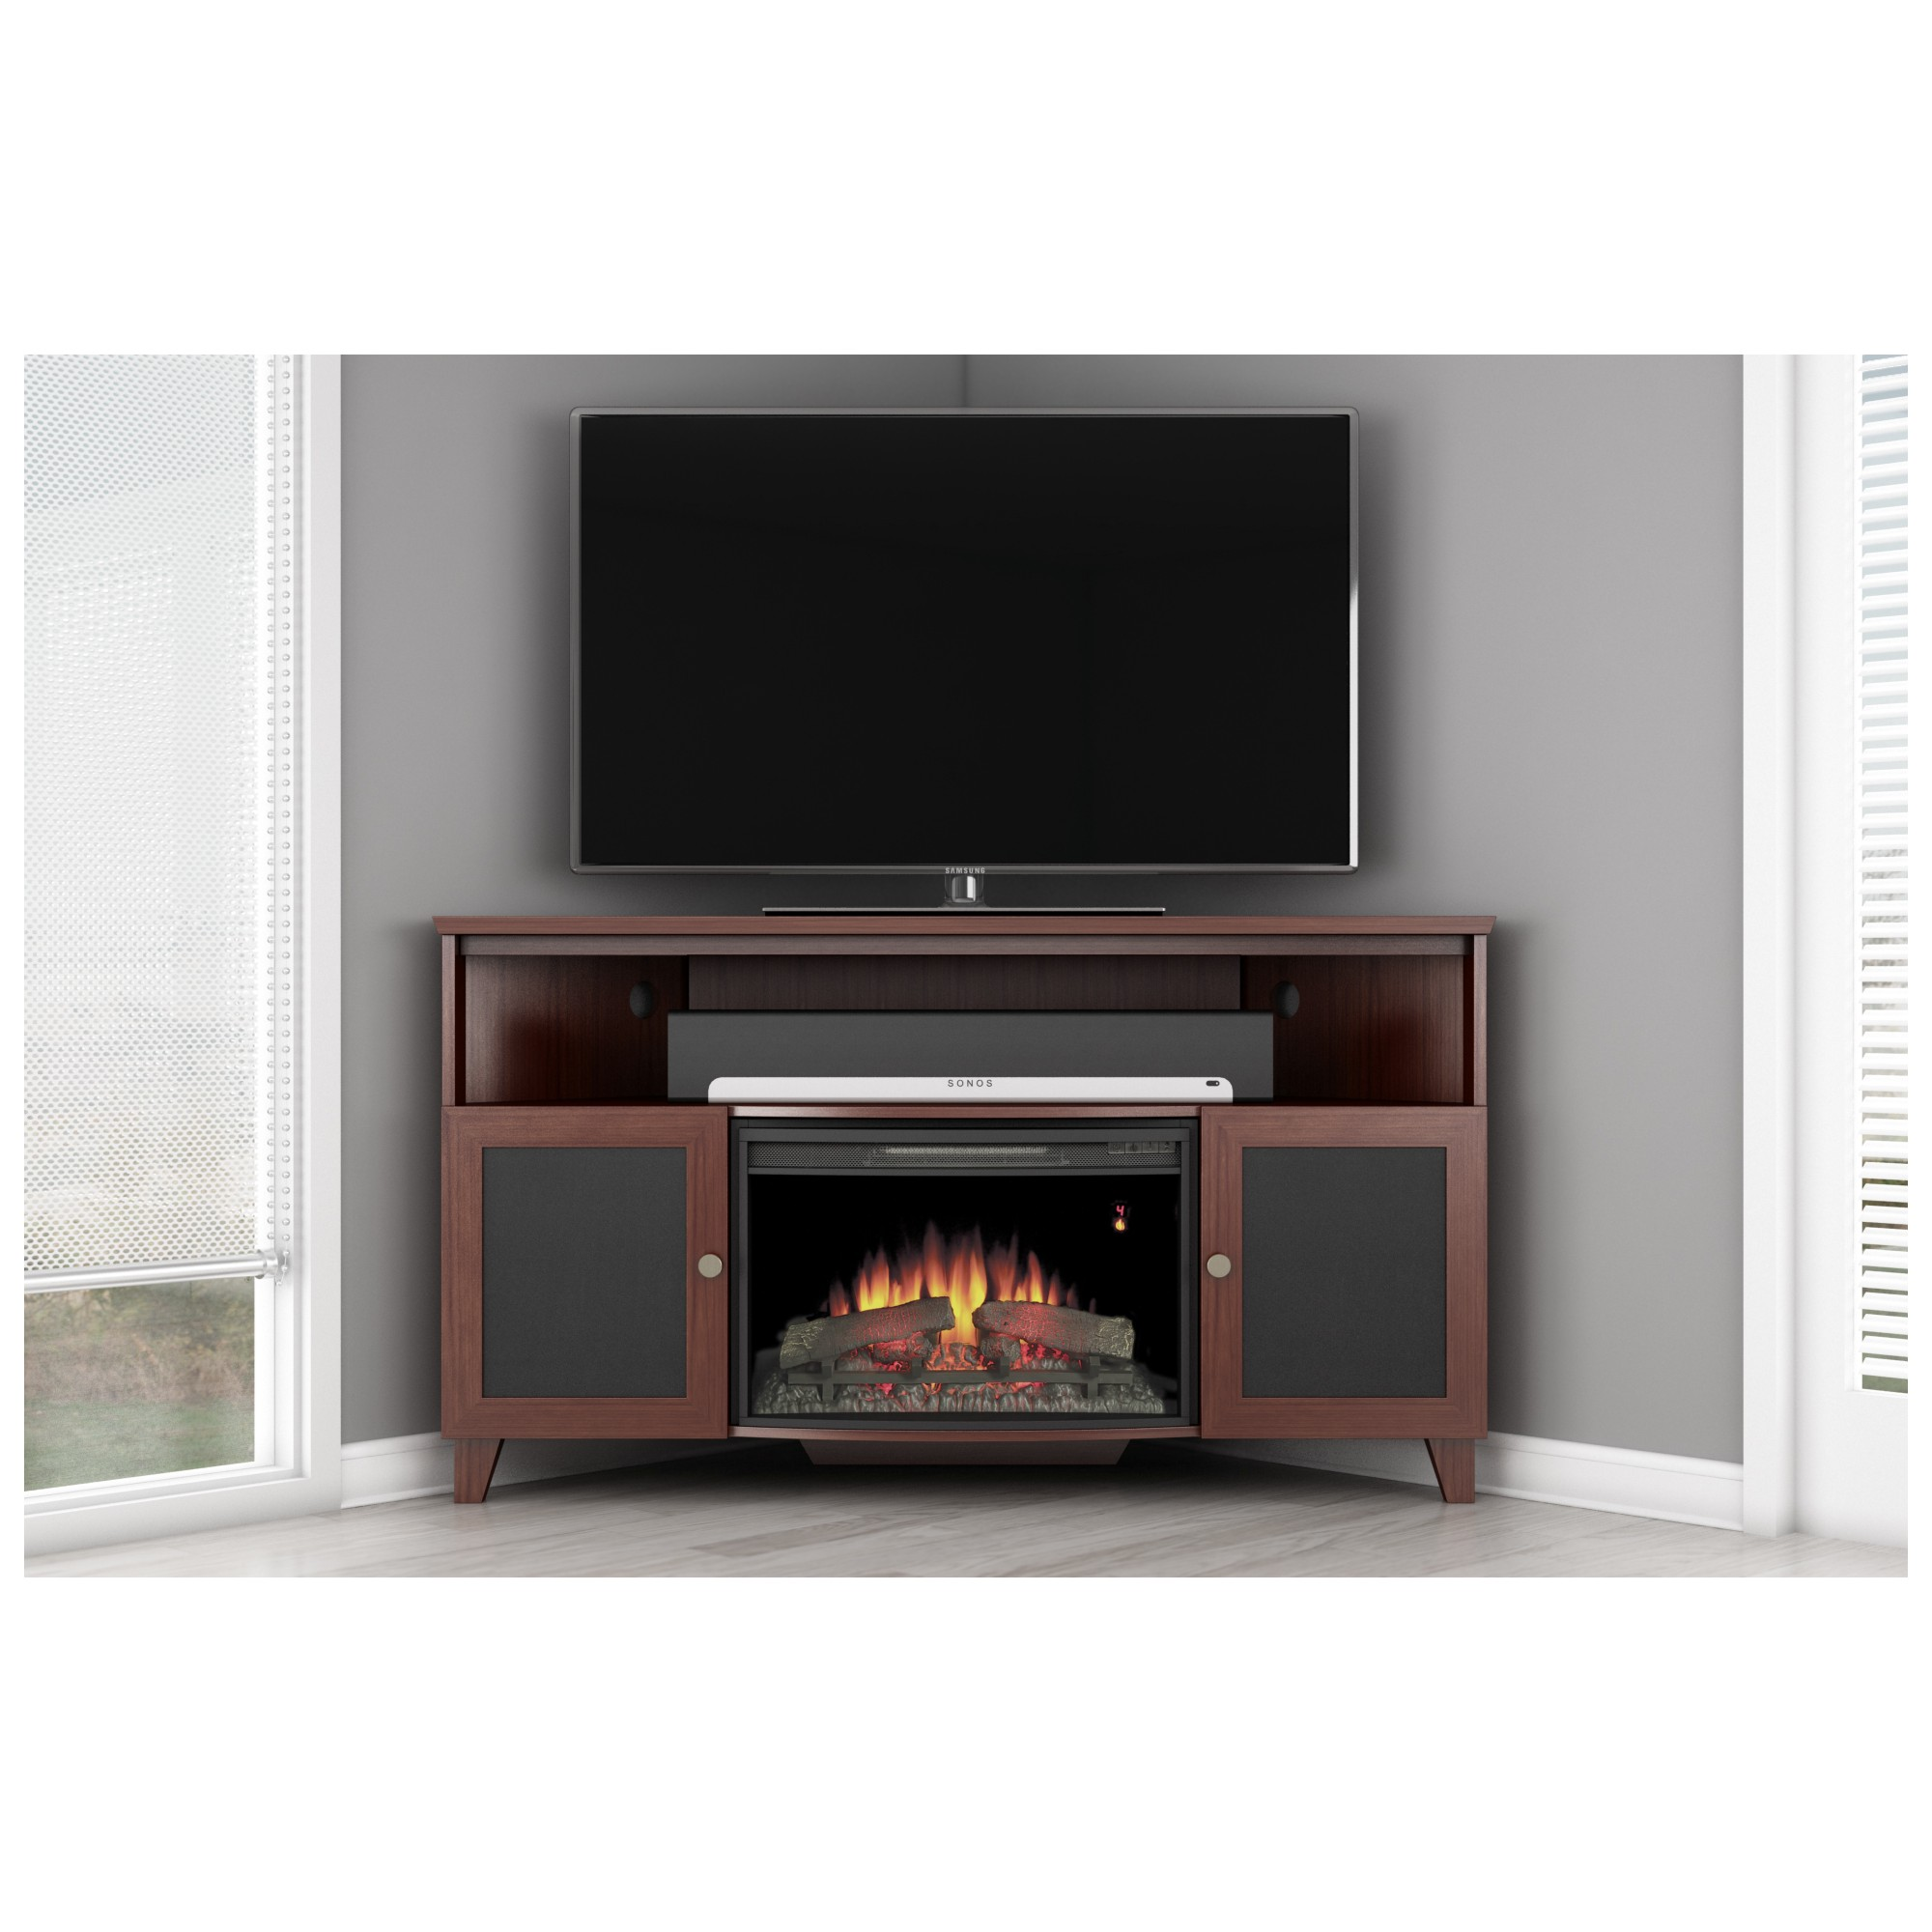 flat walker brown with console ideas tv of in inch fireplace outstanding corner stand wood edison for stands screens electric traditional inspirational trends screen including